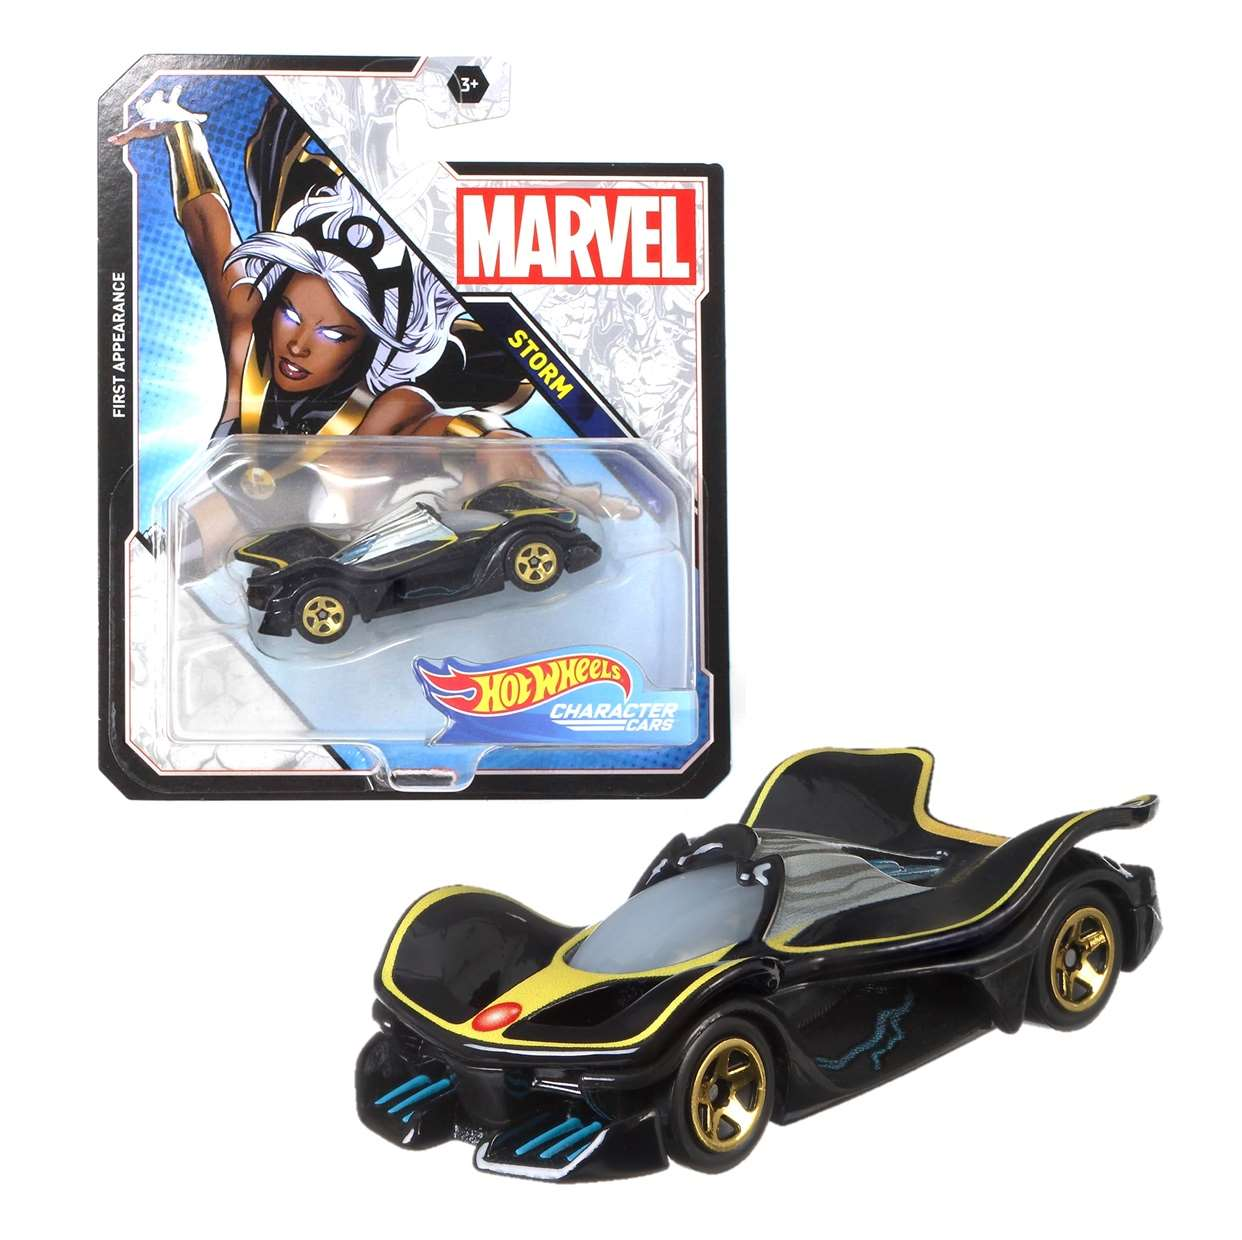 Storm Hot Wheels Marvel First Appearance Character Car